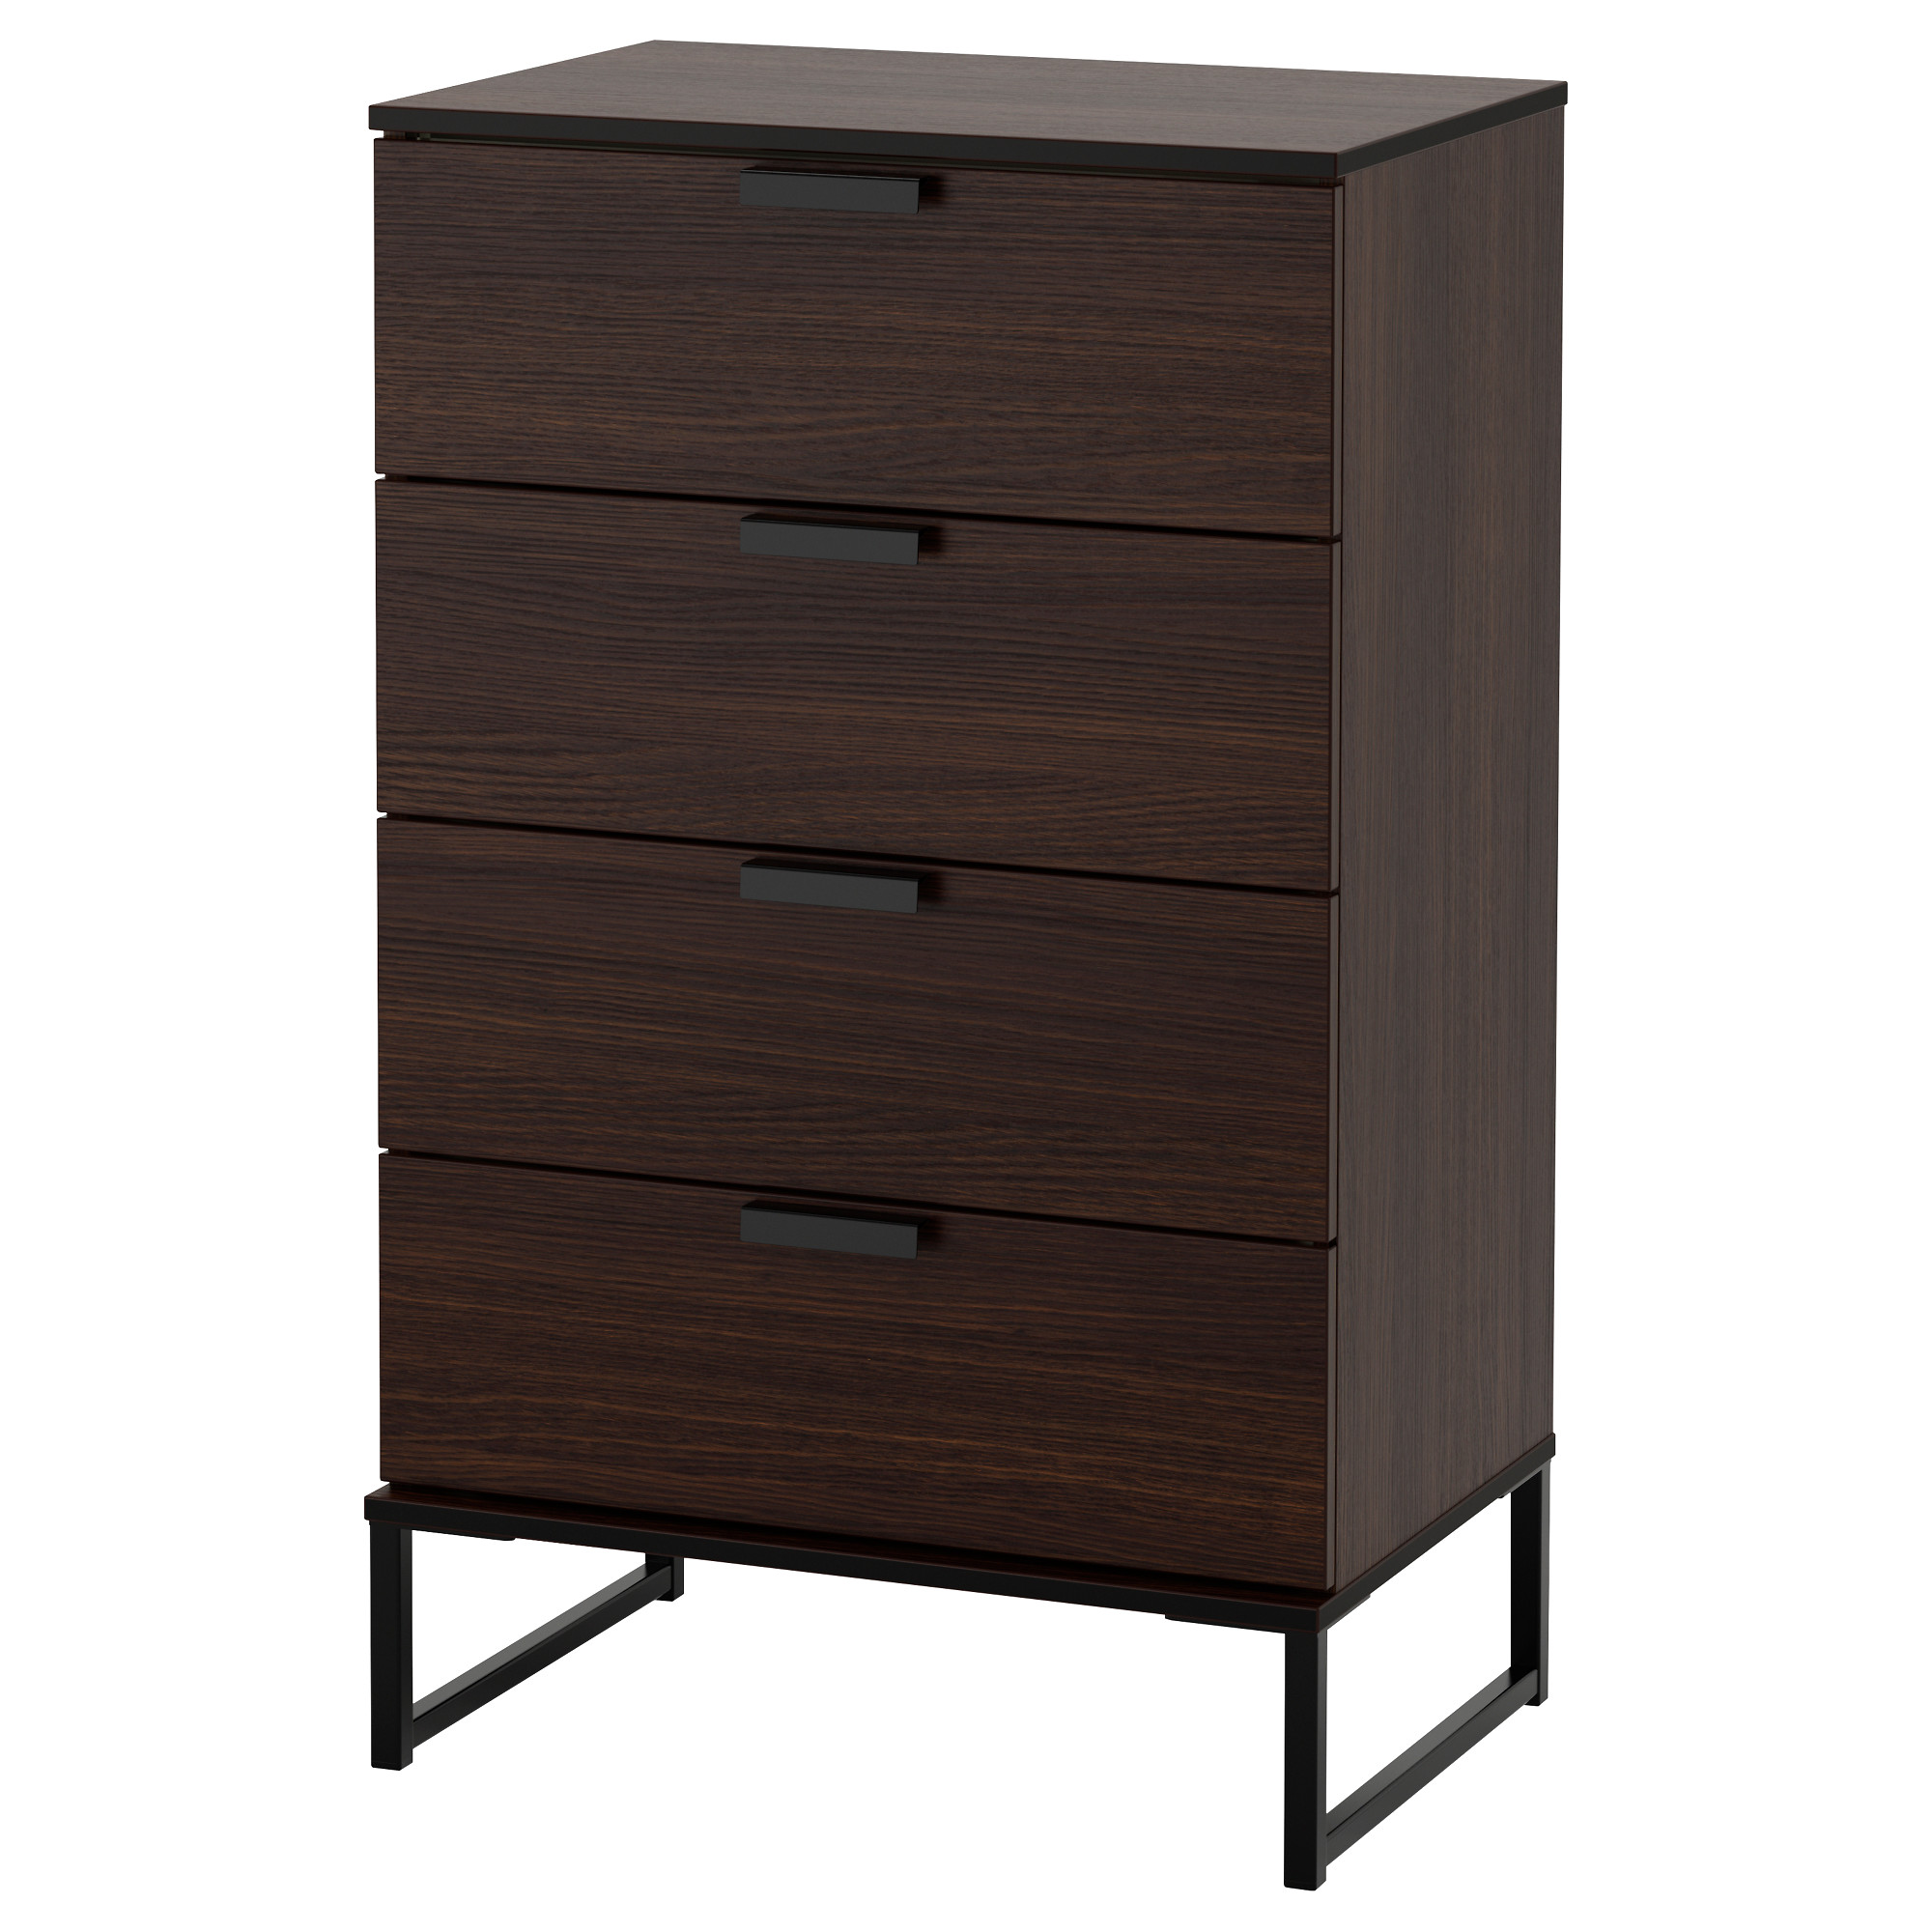 premium selection 189c0 1566f 4-drawer chest TRYSIL dark brown